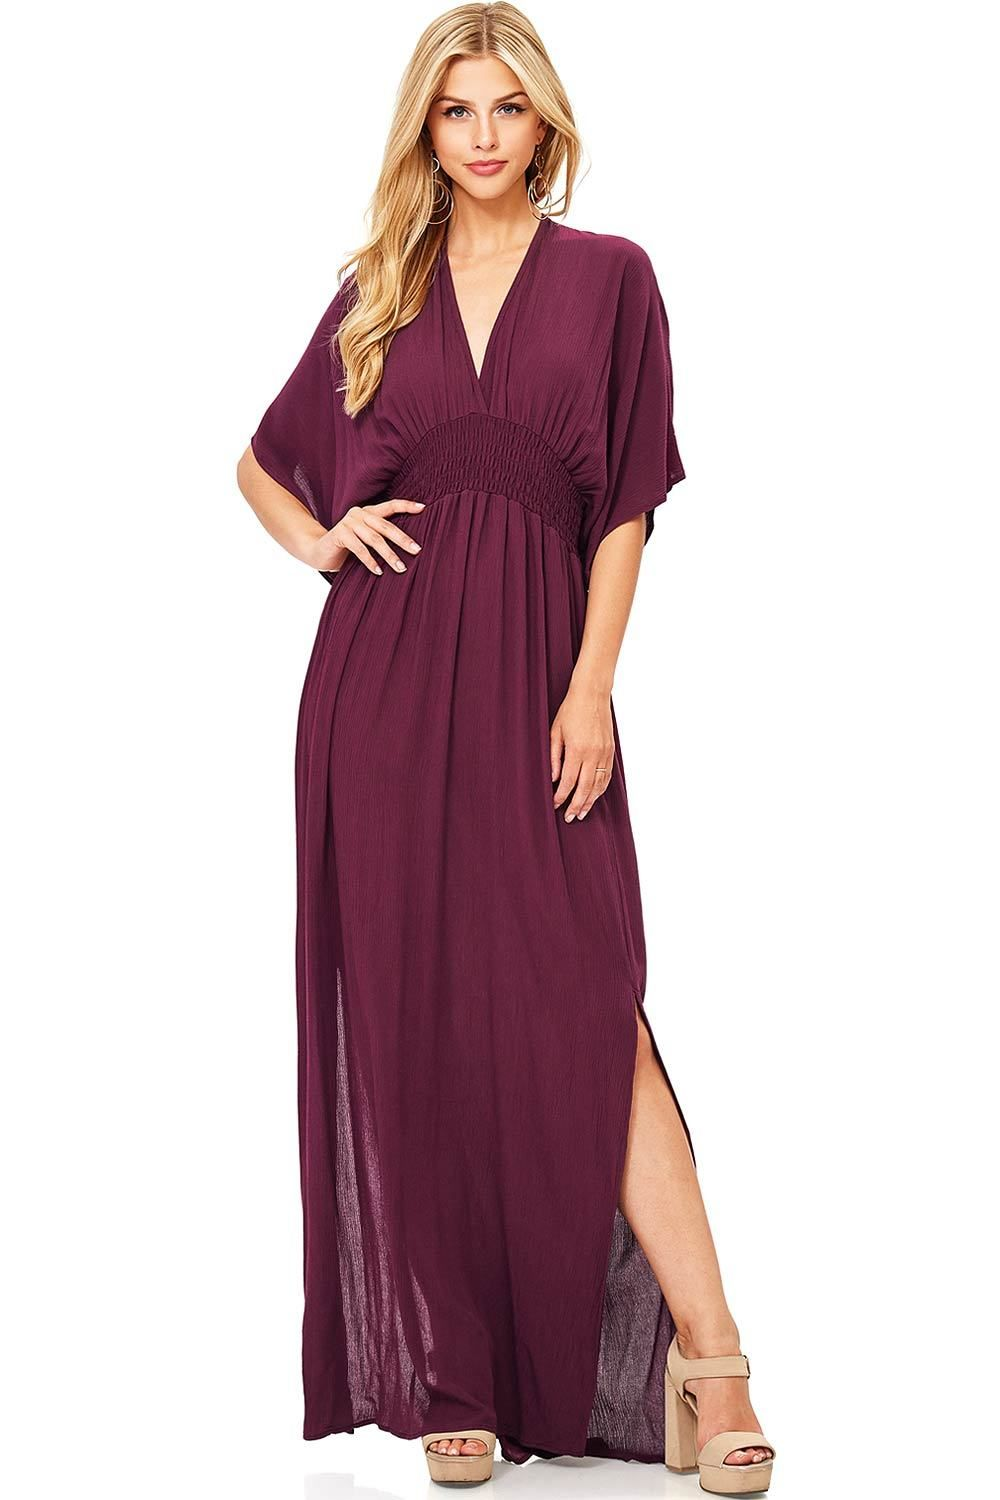 Ethereal maxi dress ethereal maxi dresses and products